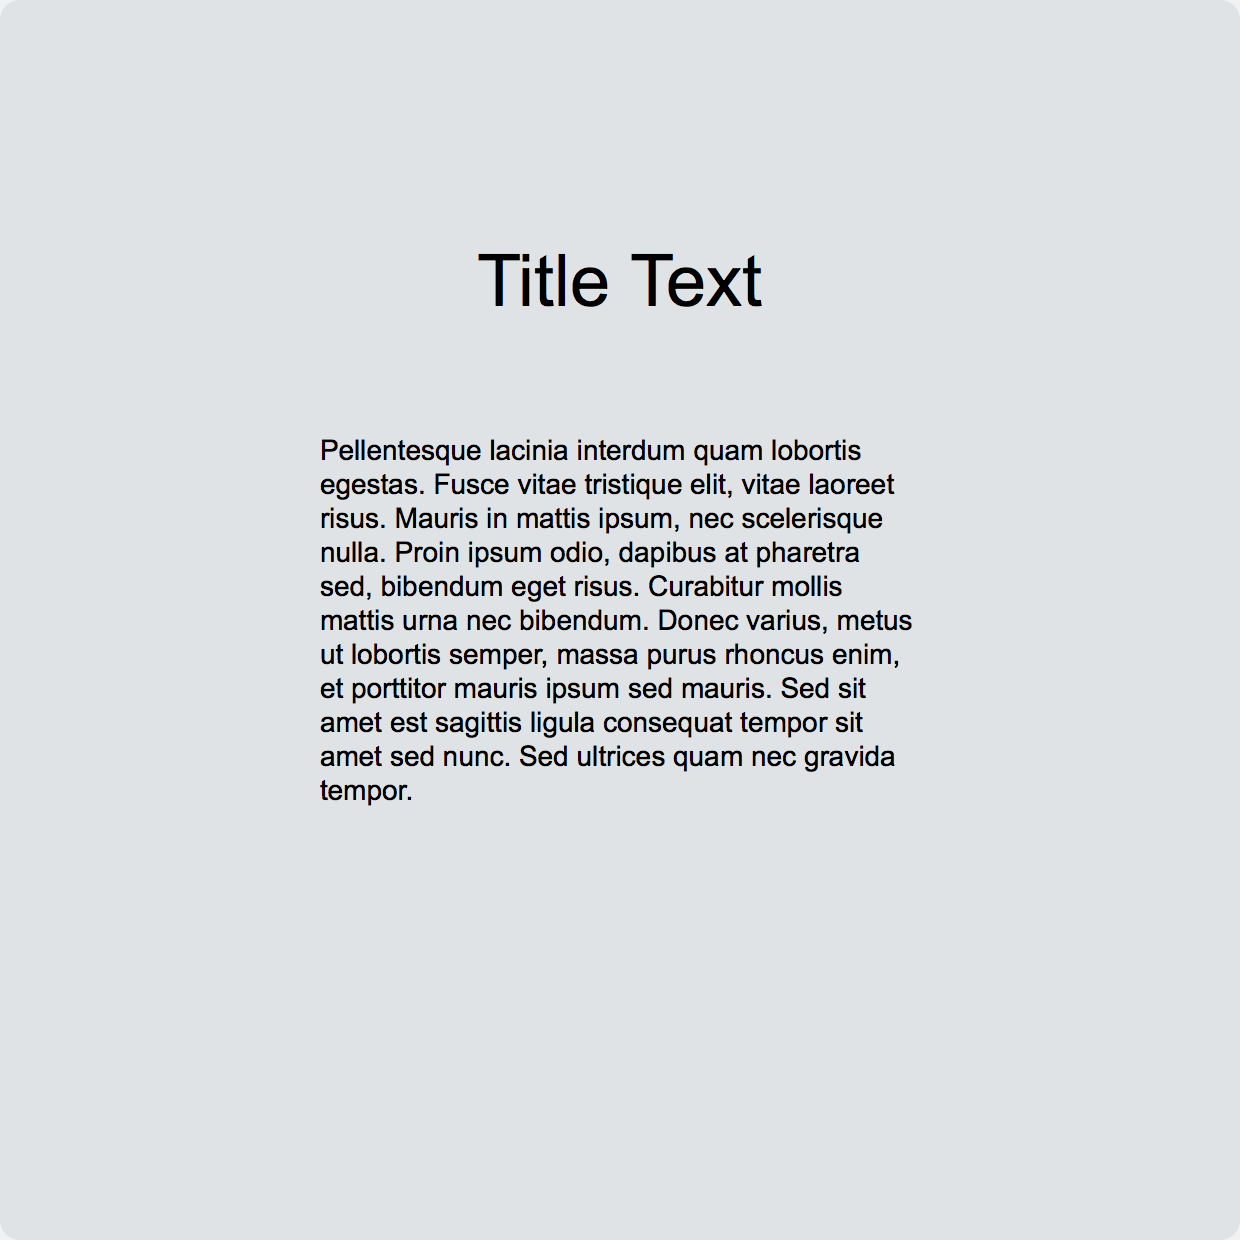 Placeholder Text Kit